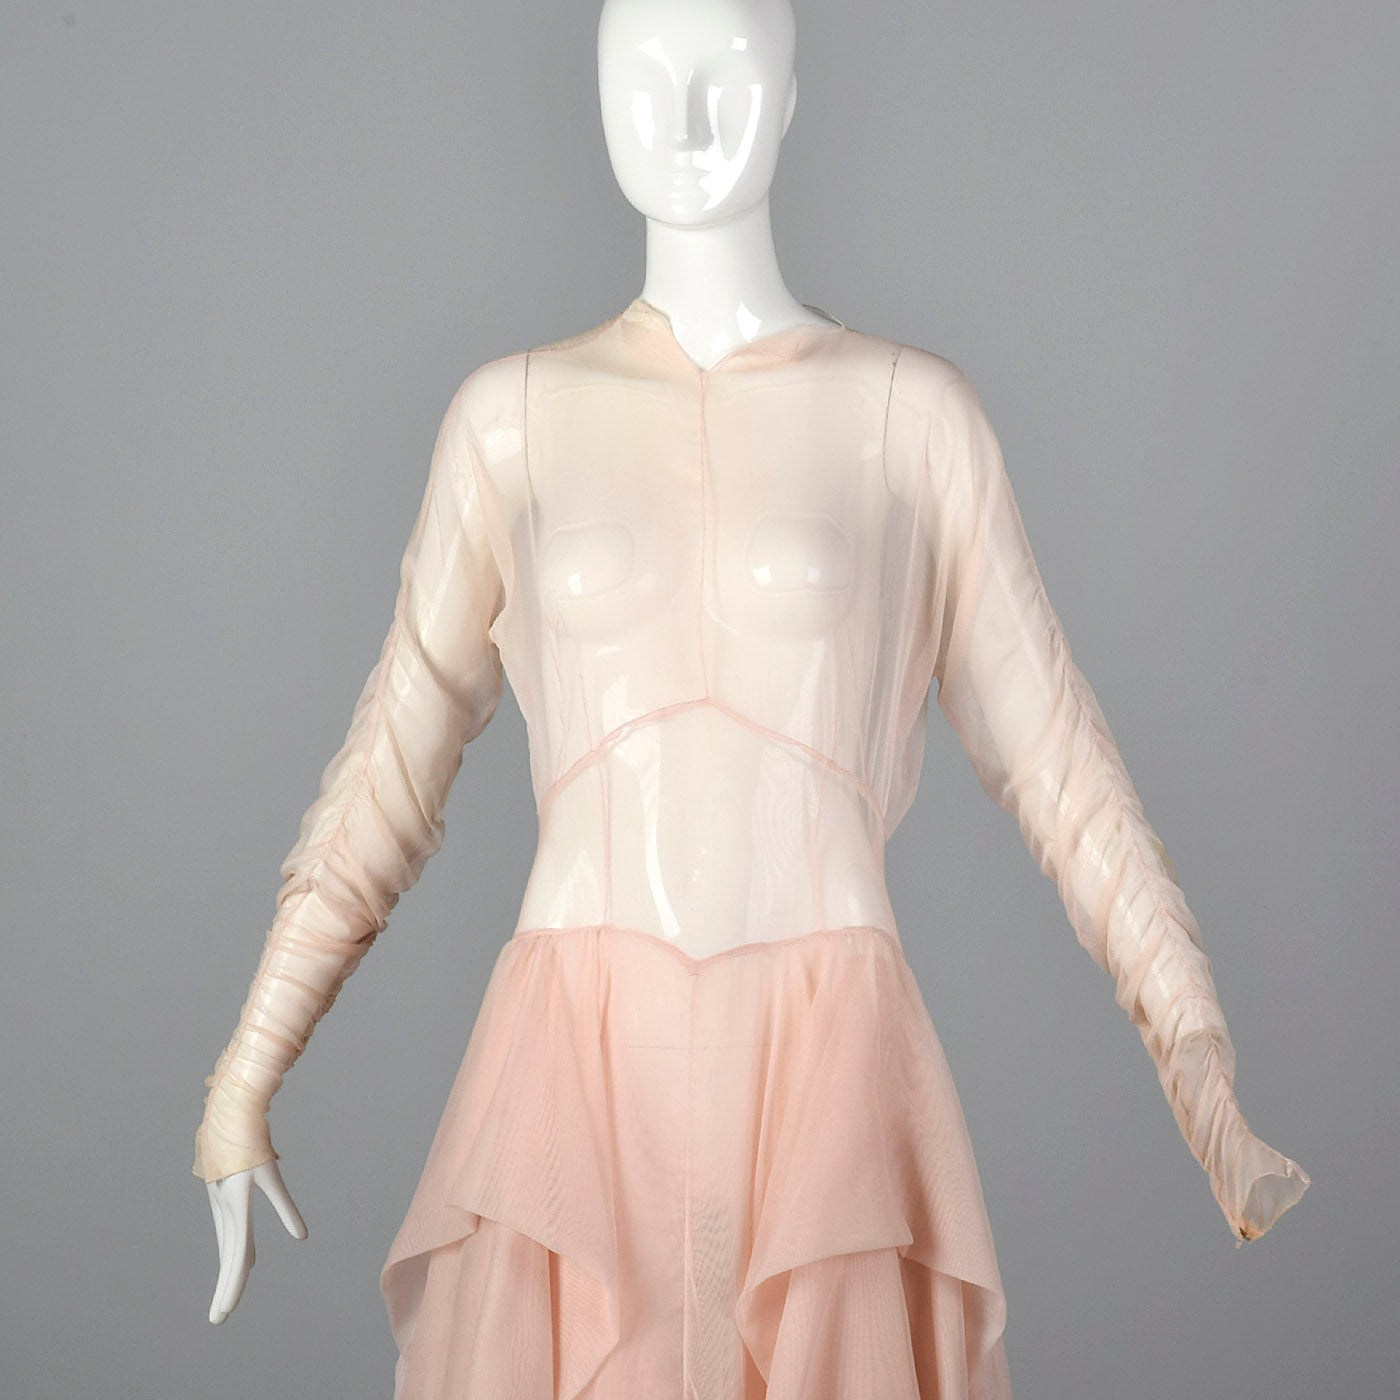 1950s Sheer Pink Dress with Draped Skirt